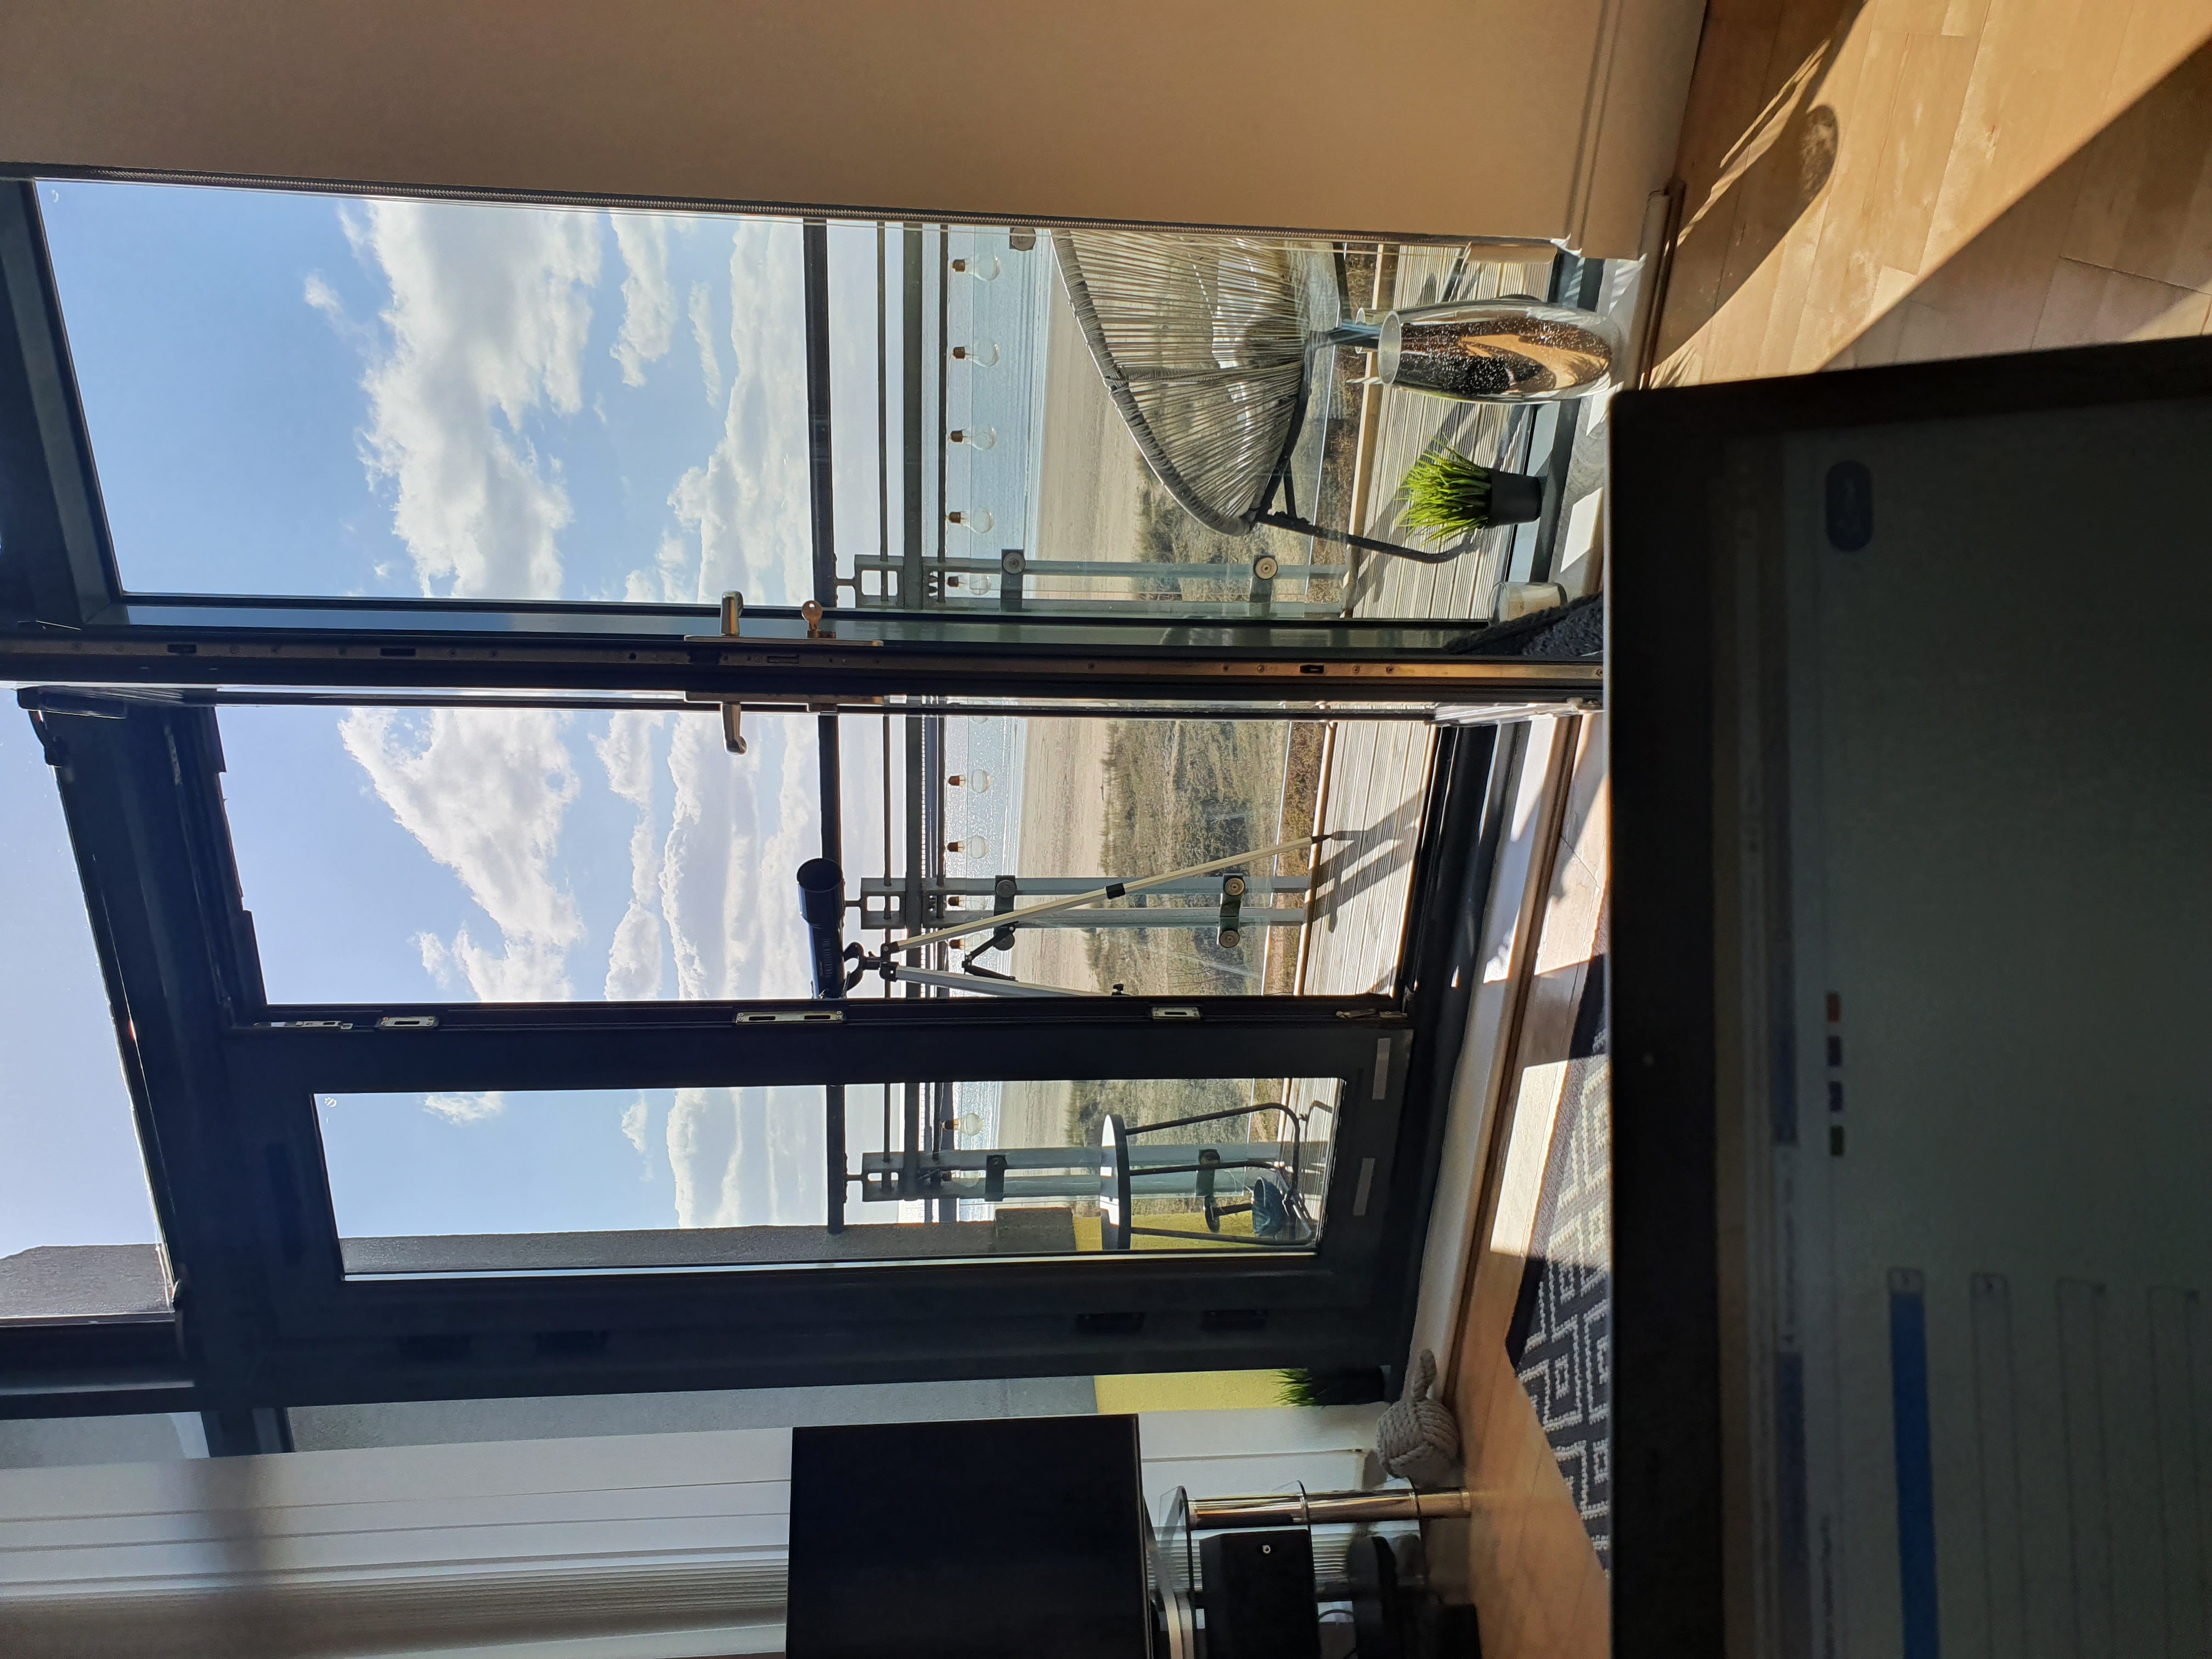 remote working from home calm sea balcony view dream